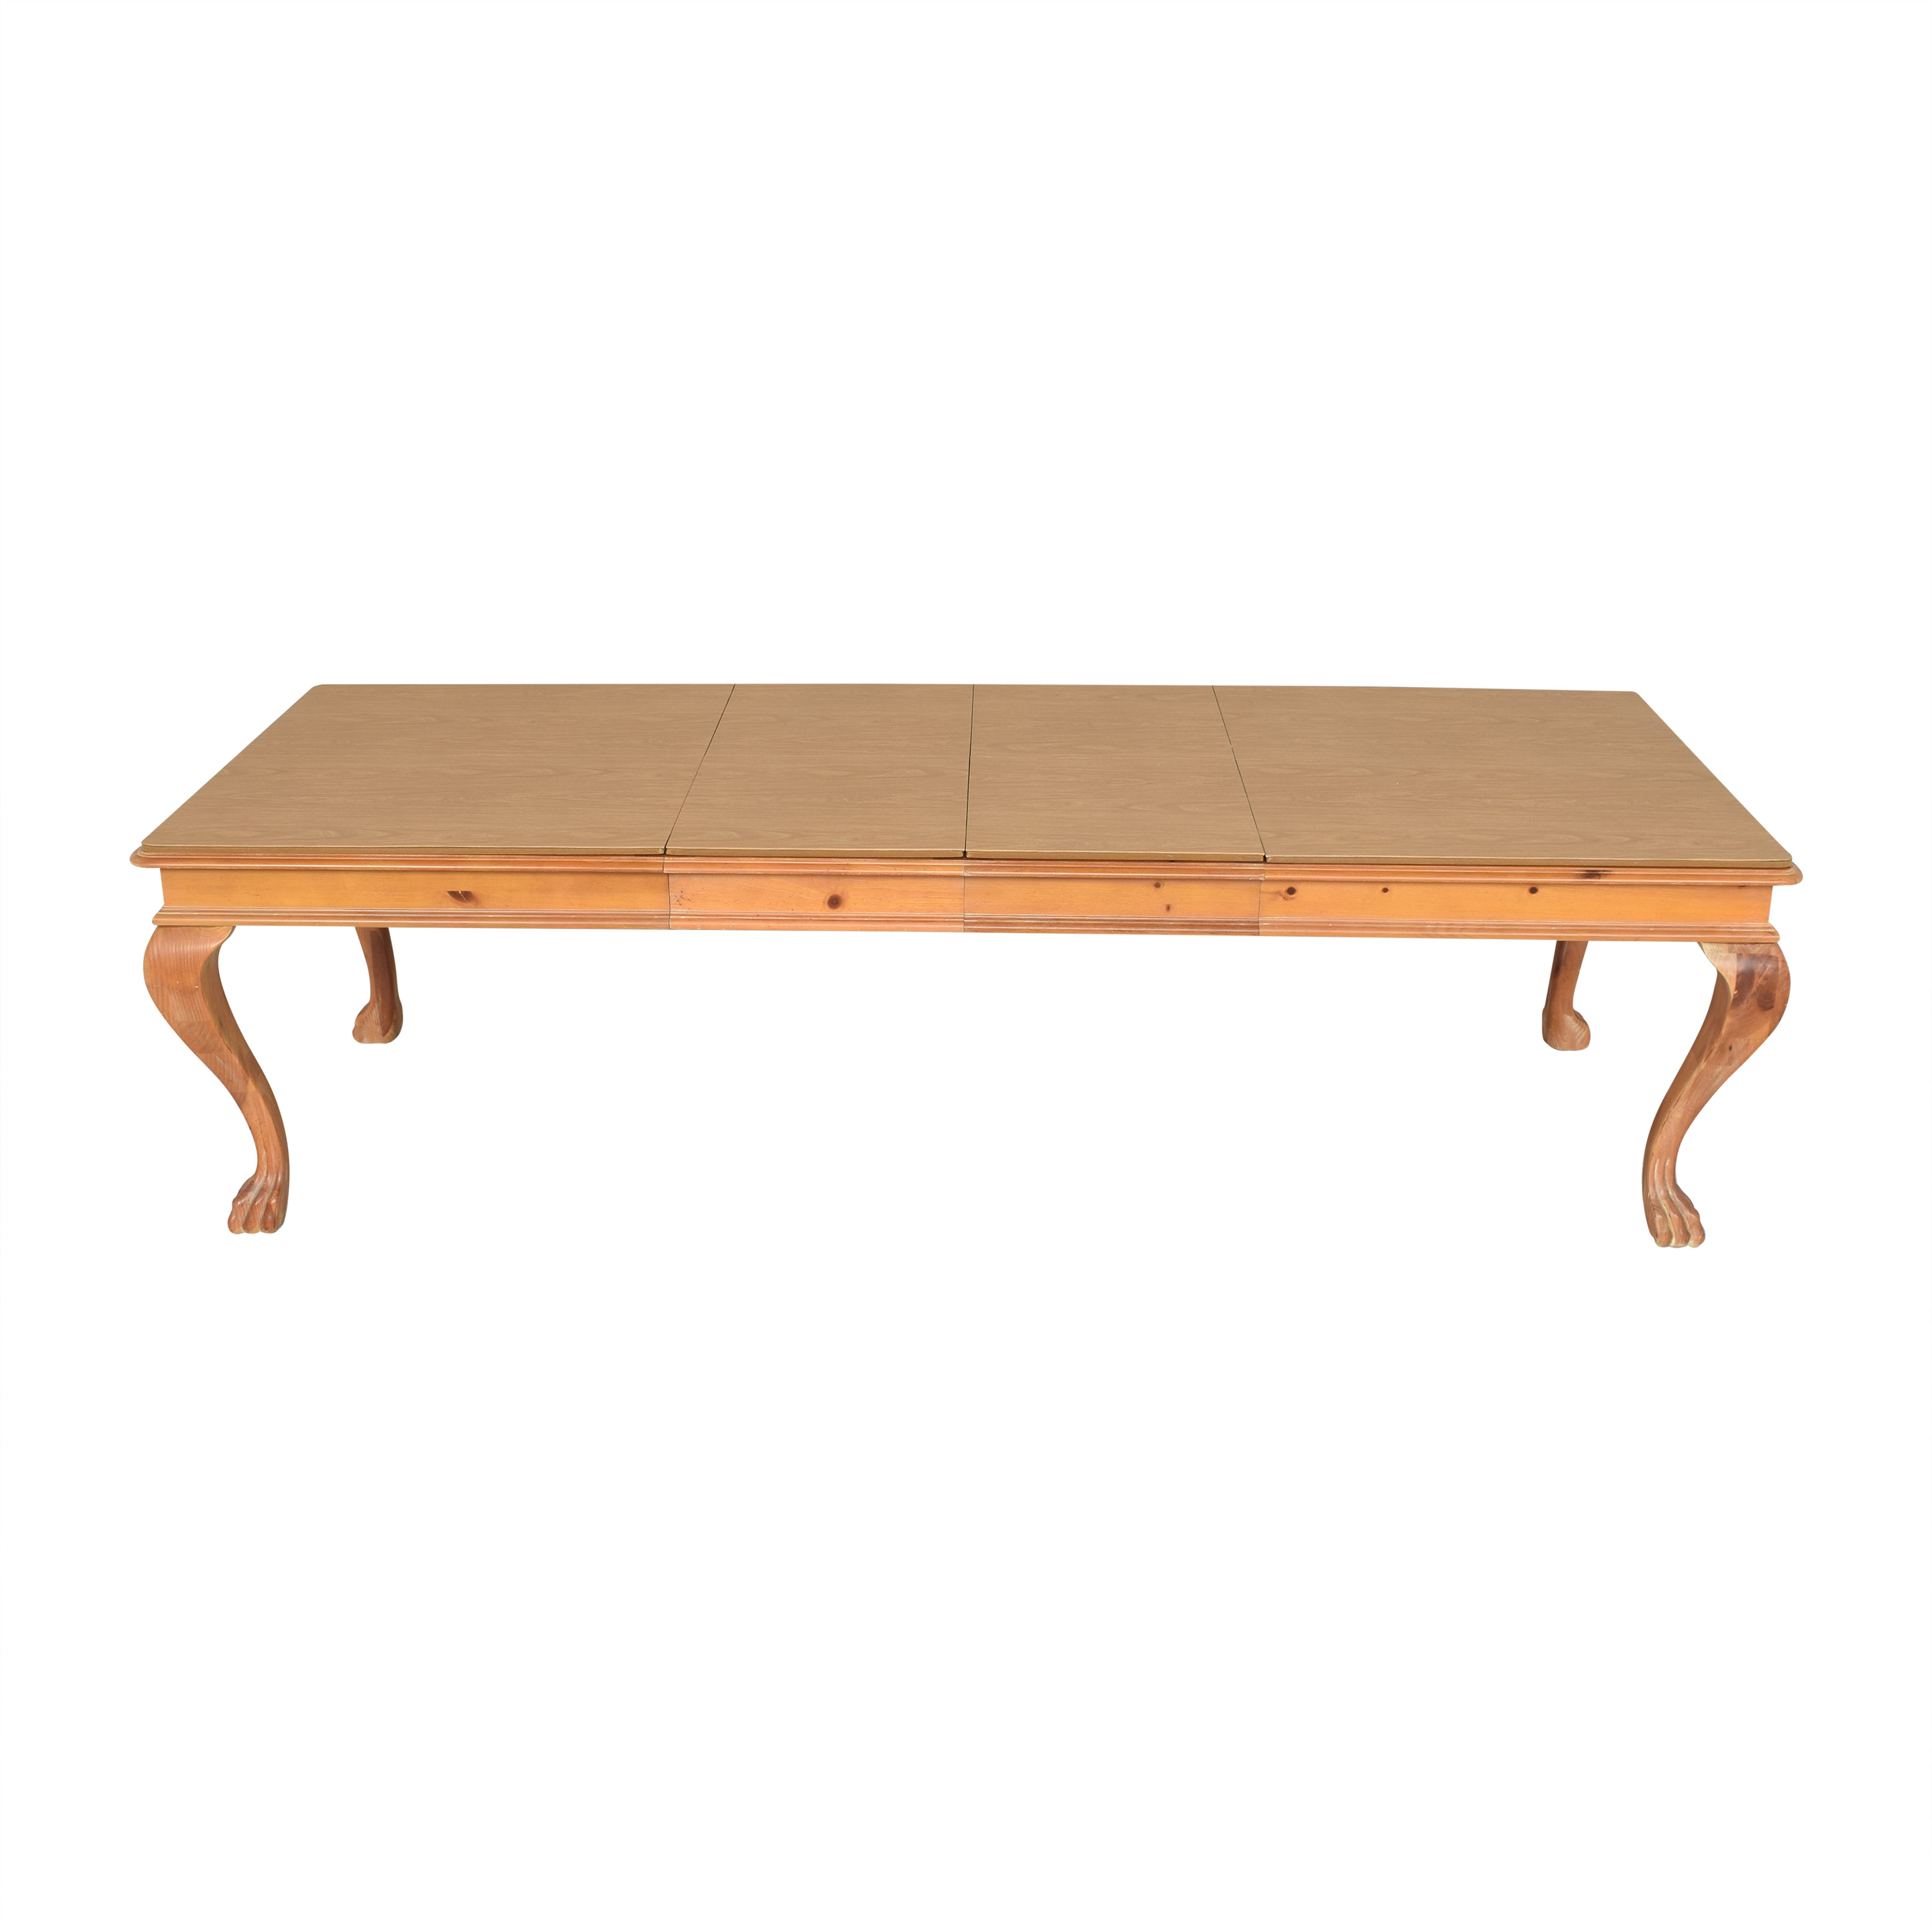 Thomasville Thomasville Extendable Chippendale Dining Table ma